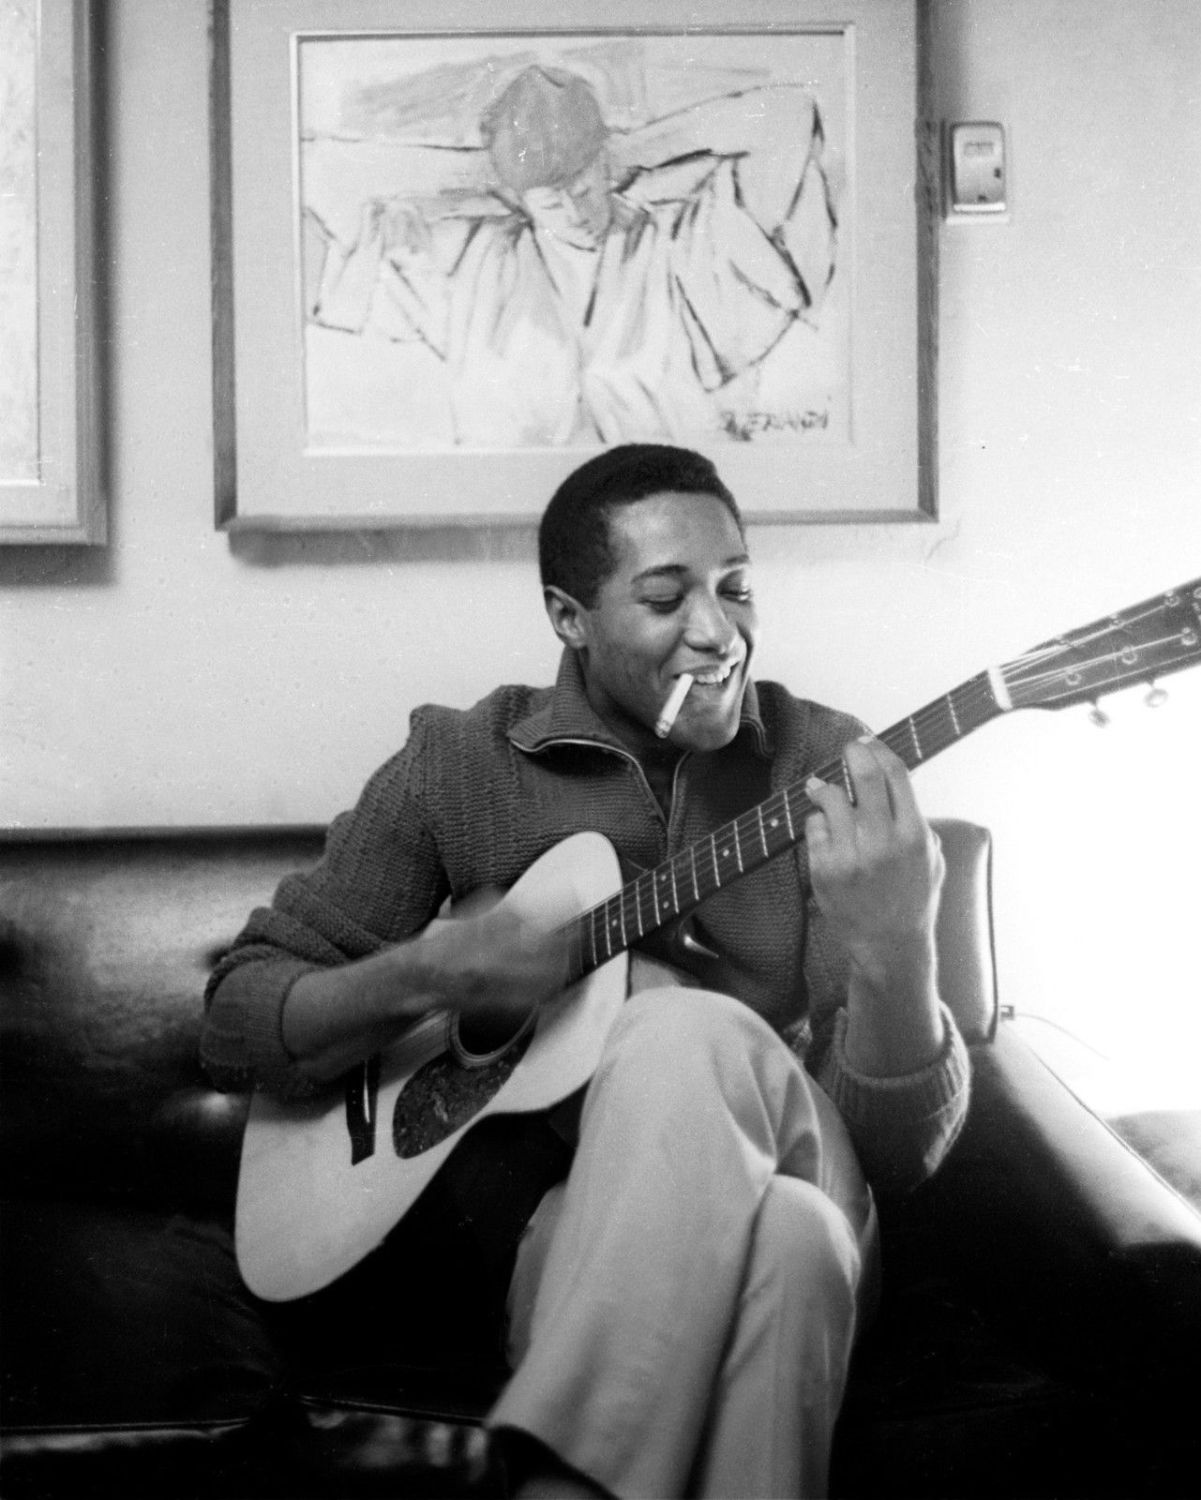 Lady, You Shot Me! How Sam Cooke, The King Of Soul, Was Killed In A Seedy Motel